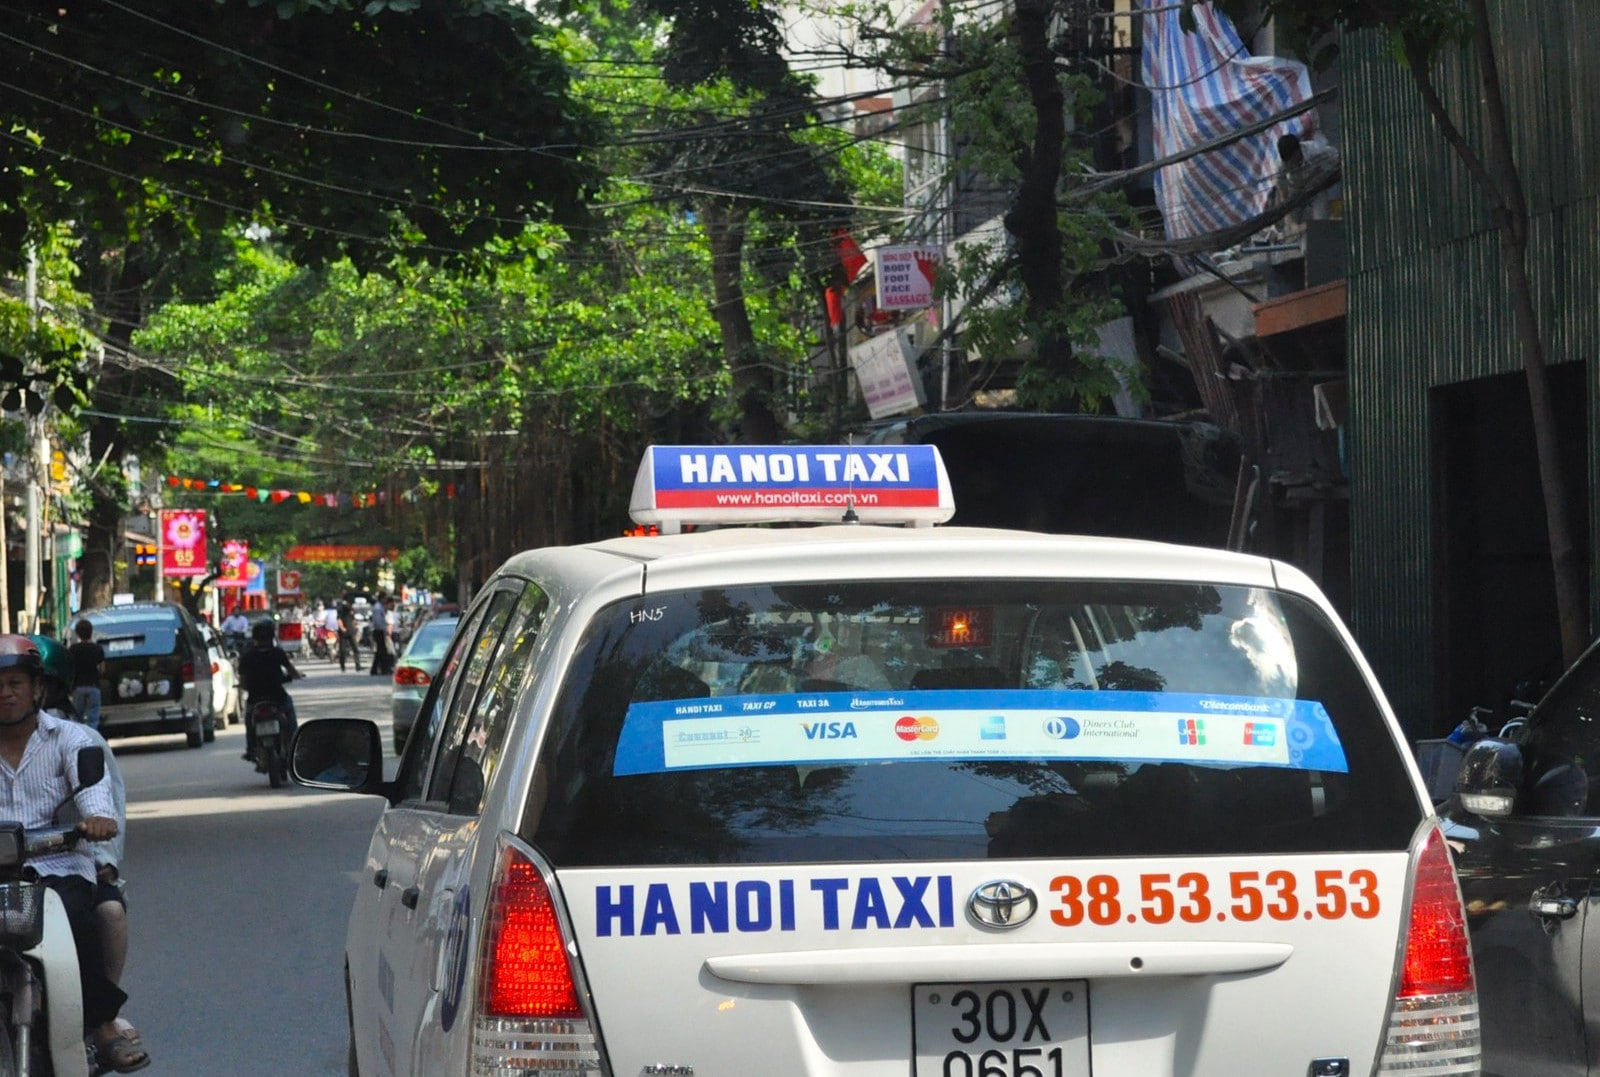 Image of a taxi in Hanoi